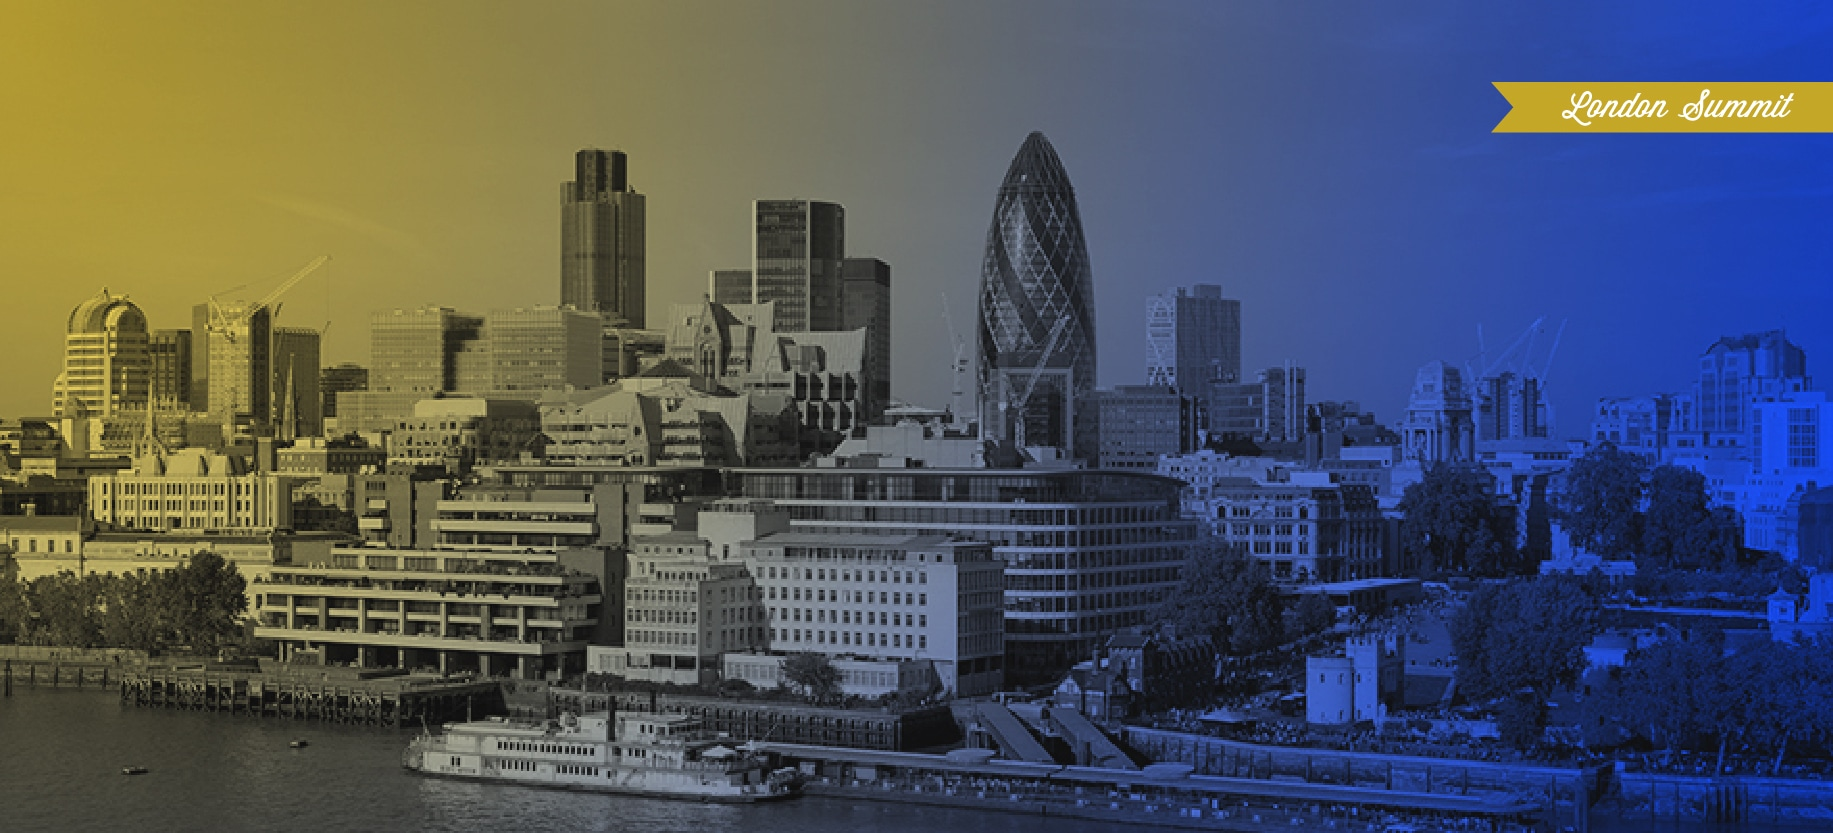 FM London Summit: What next for advanced tech?